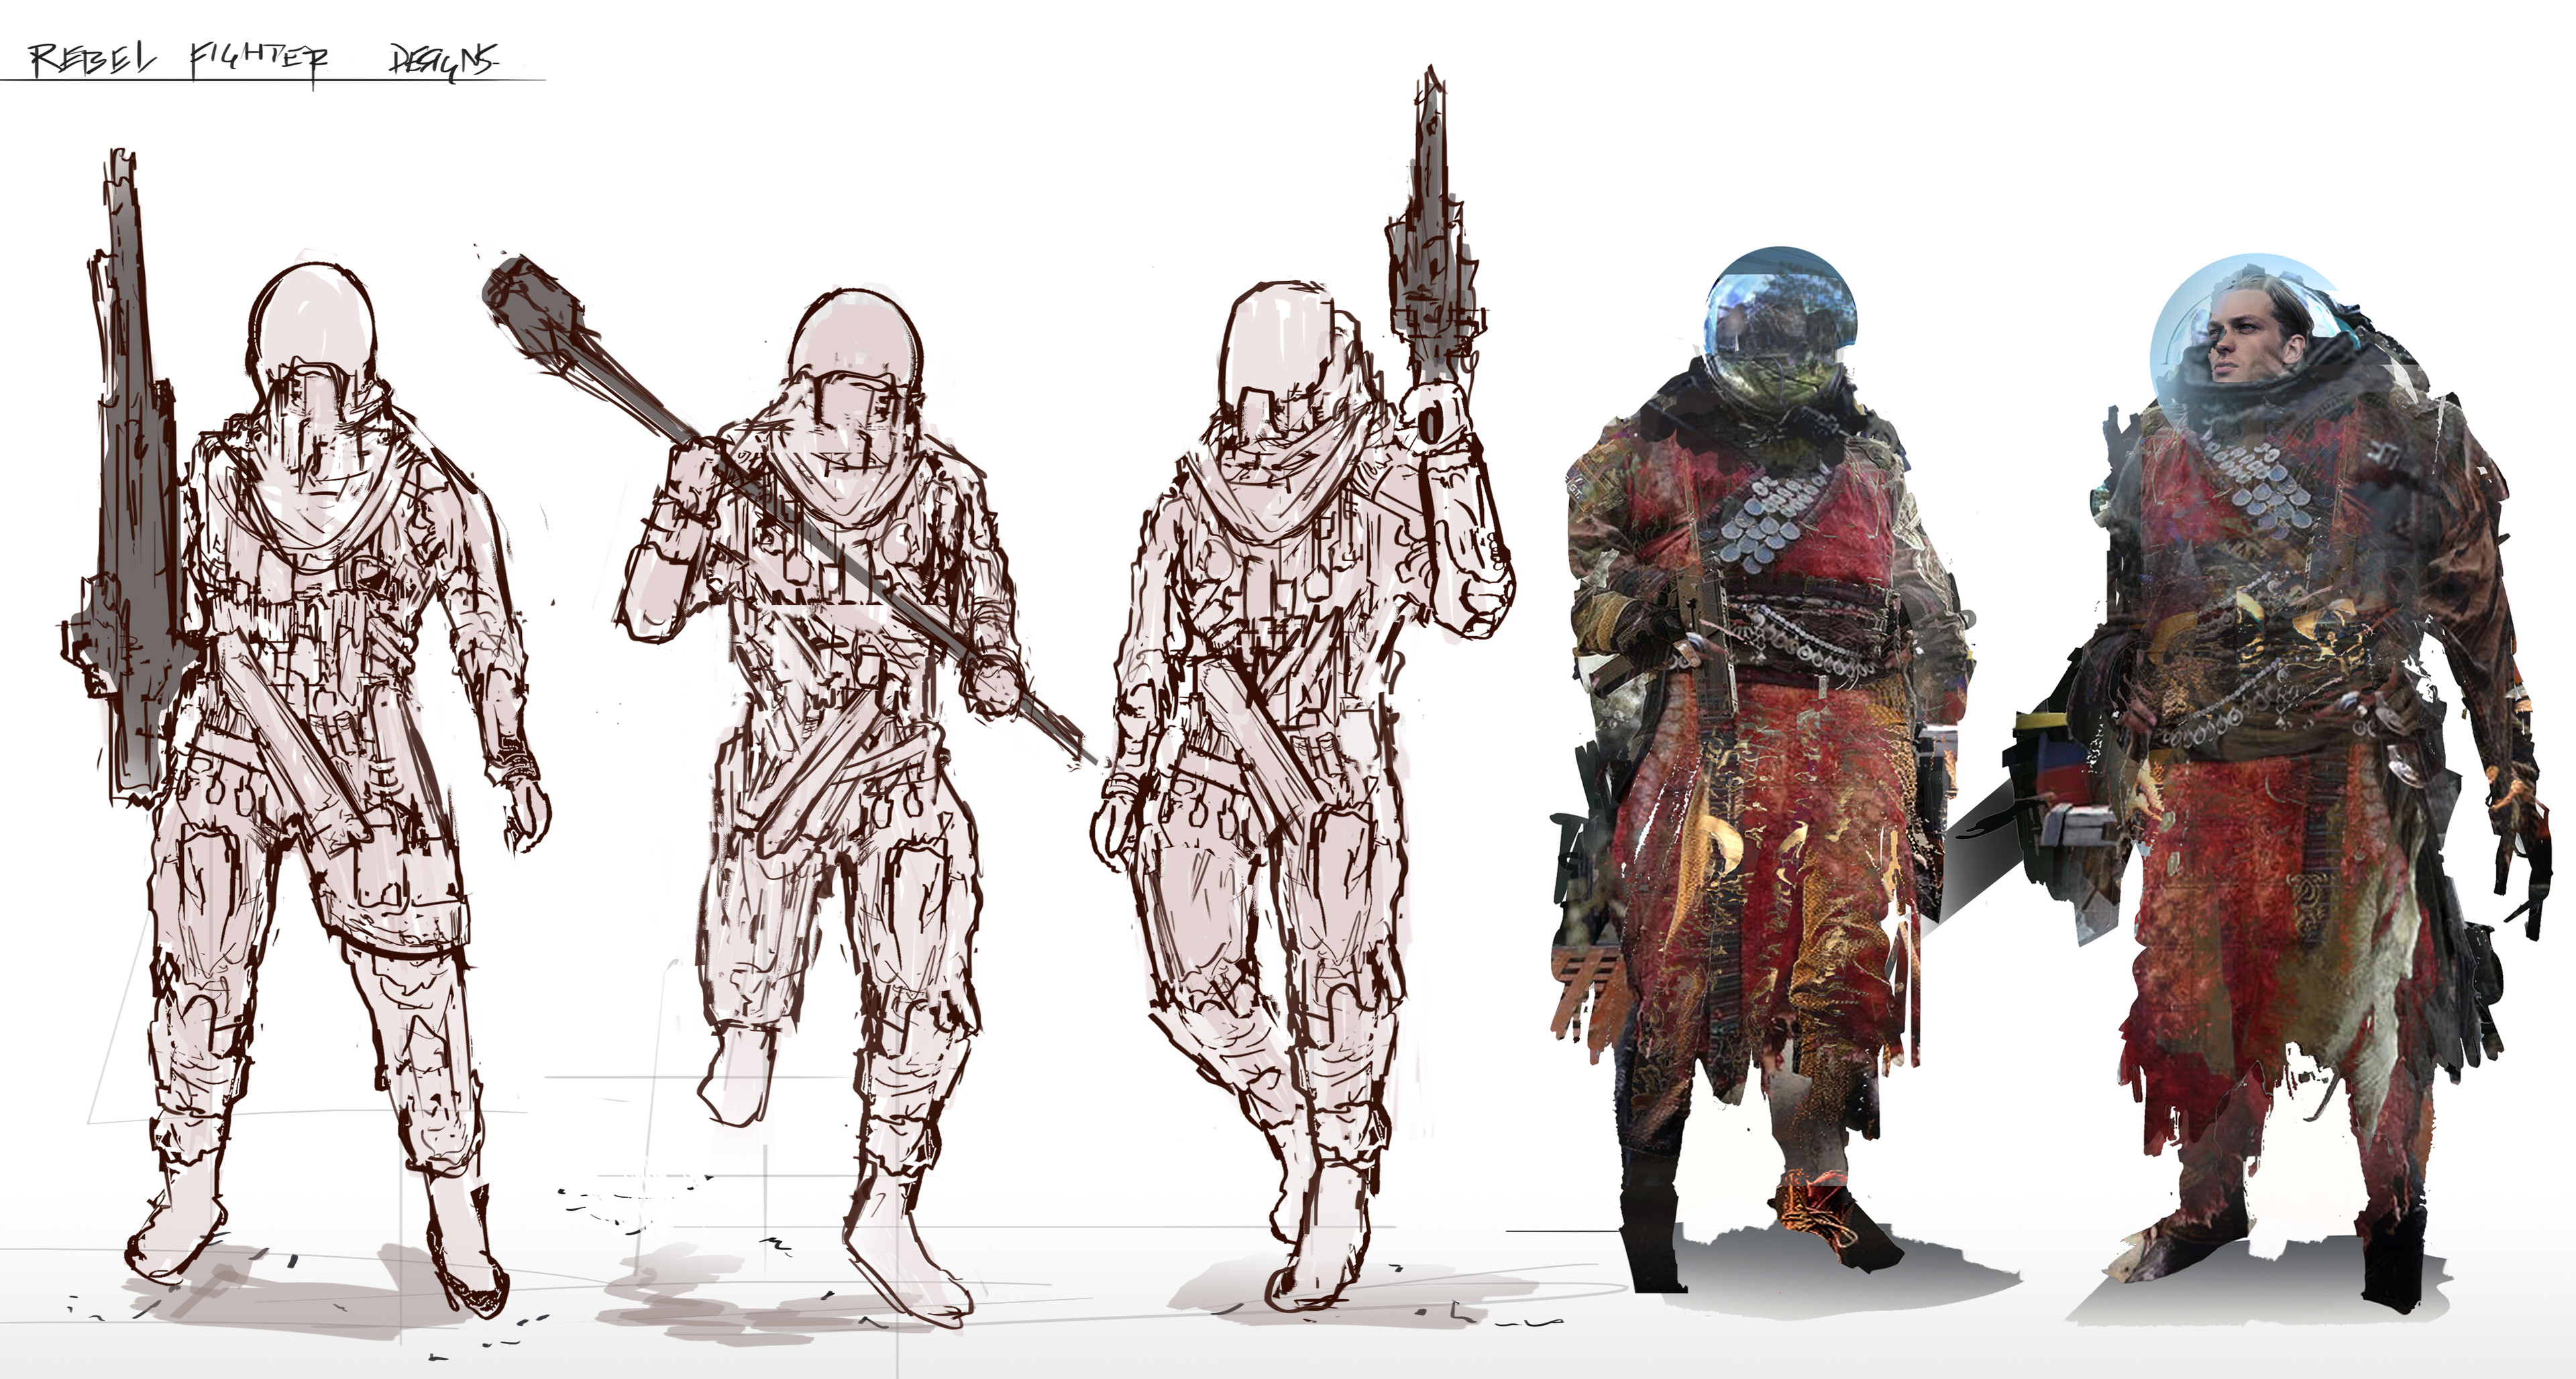 Initial character designs for the rebel faction